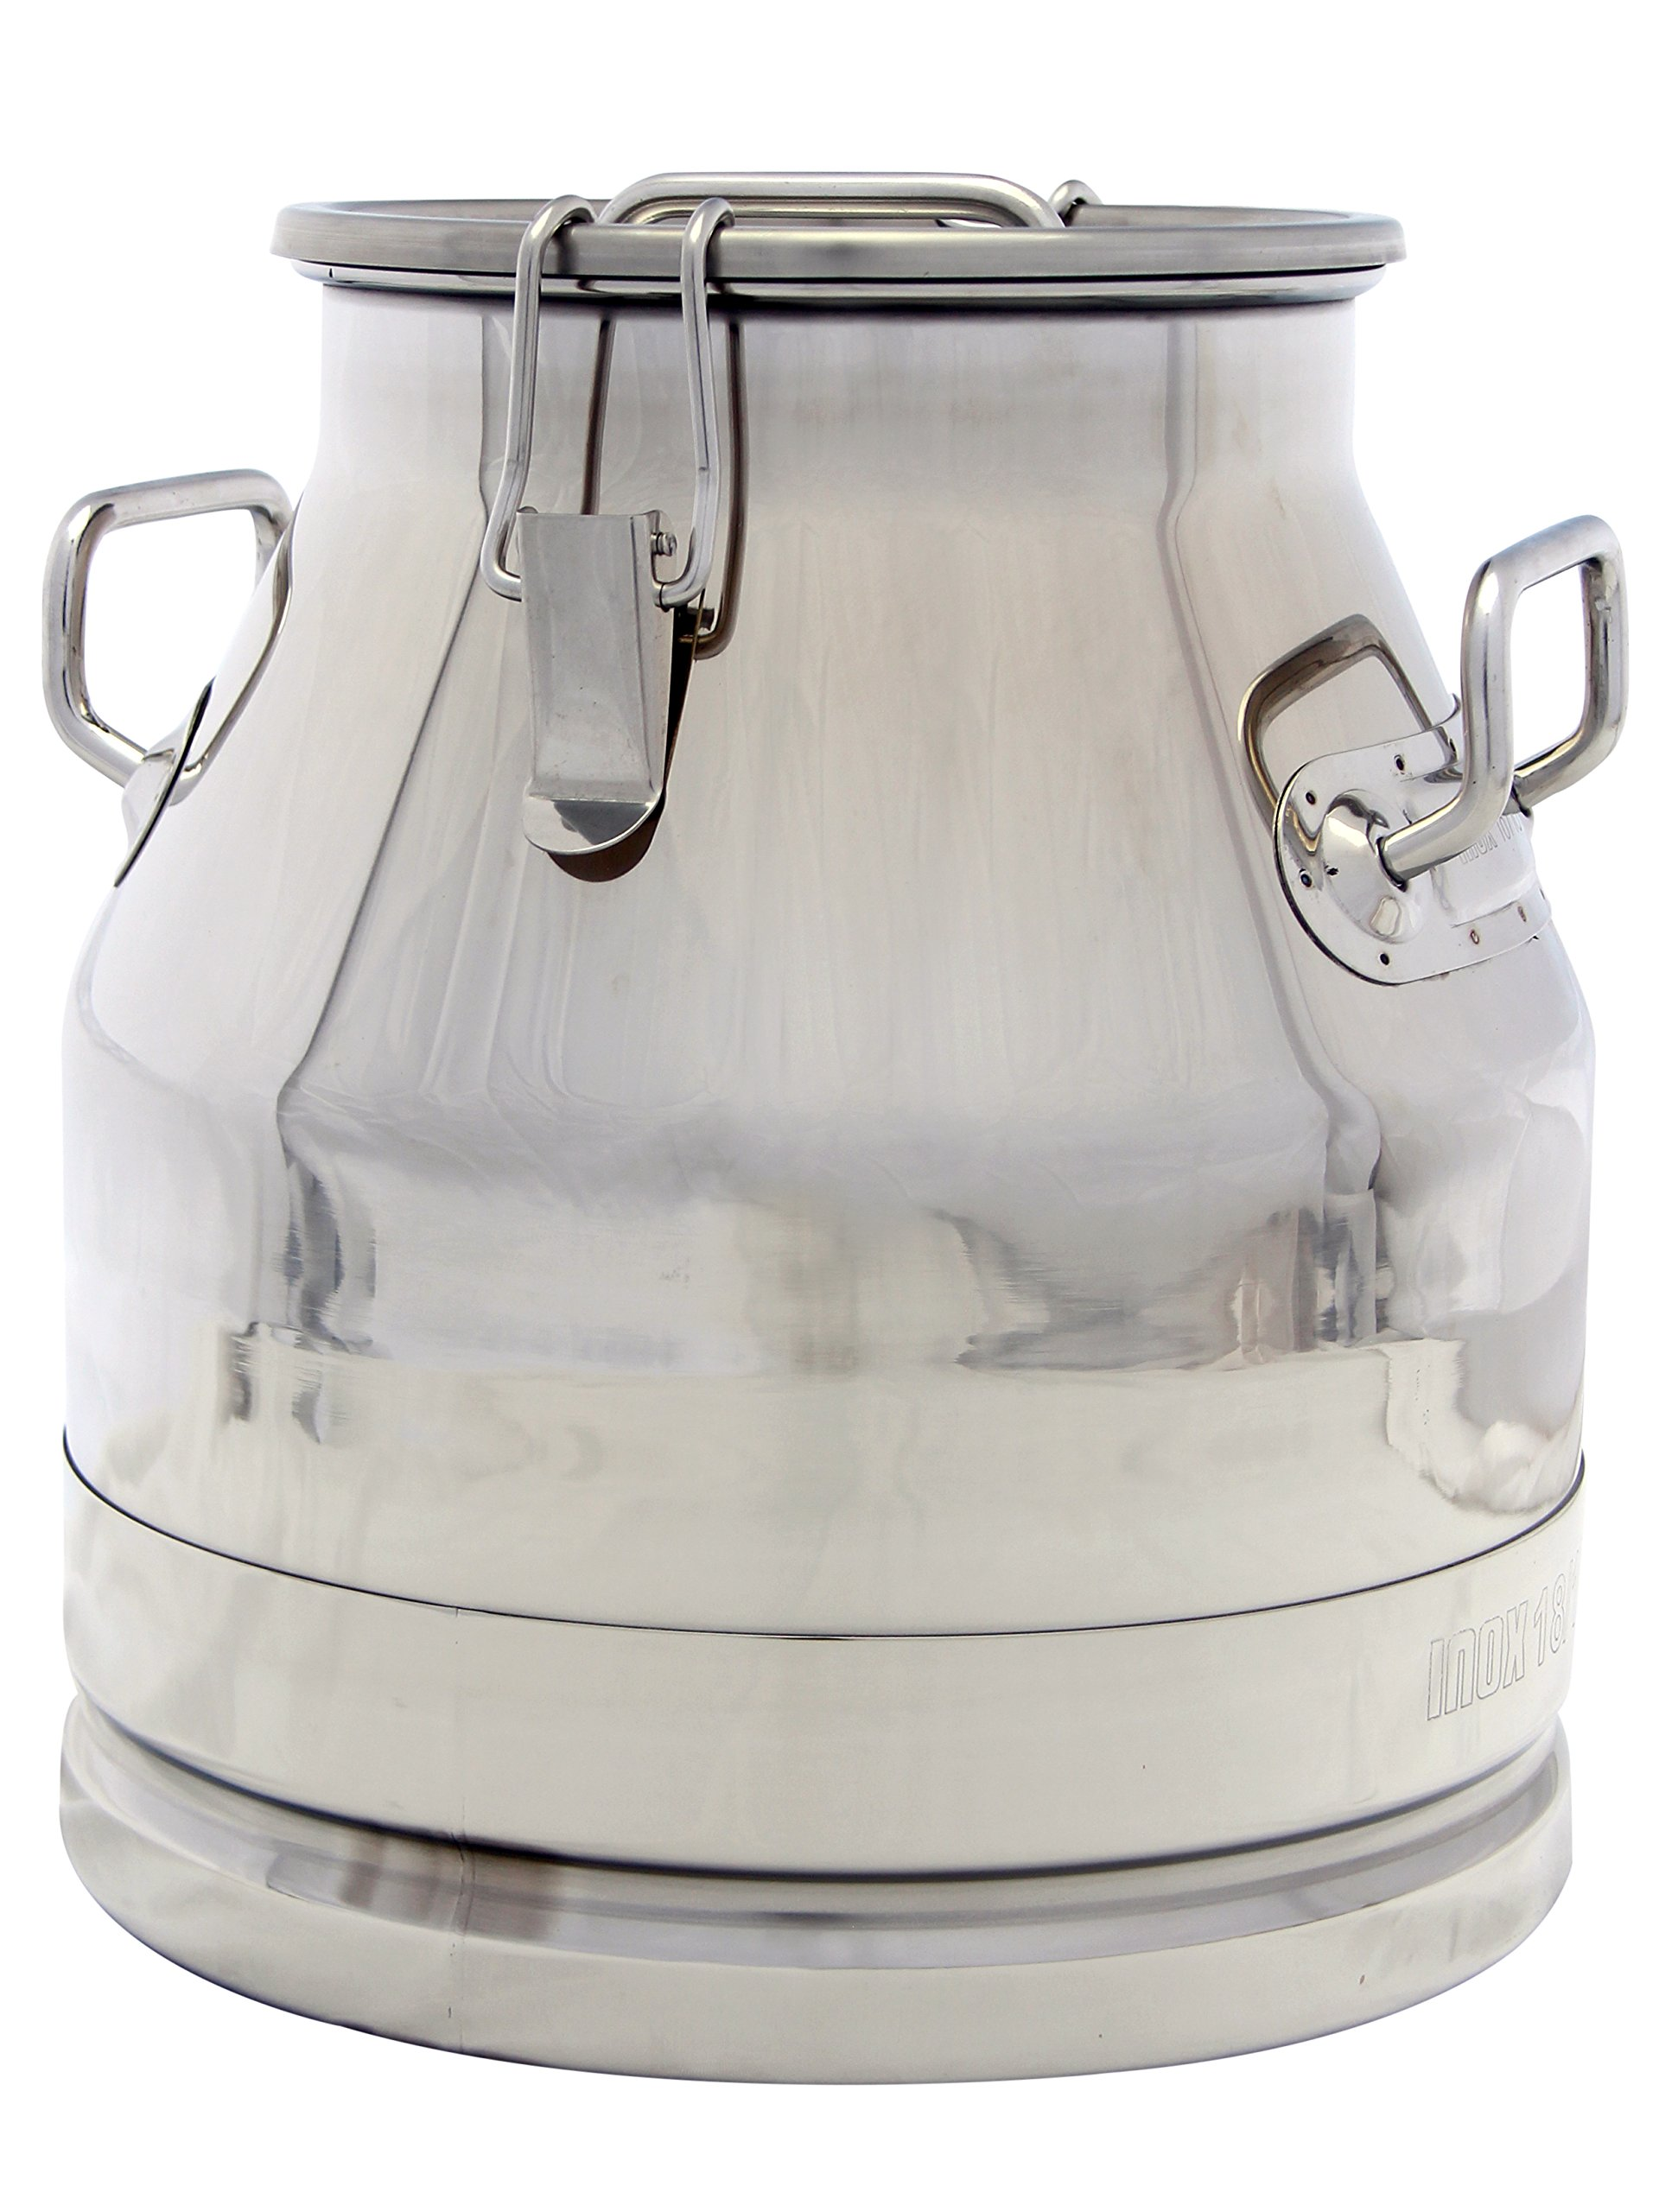 5 Gallon Milk Can Tote Jug, Stainless Steel 20 Qt. Heavy Duty Sides, Strong, Sealed Lid